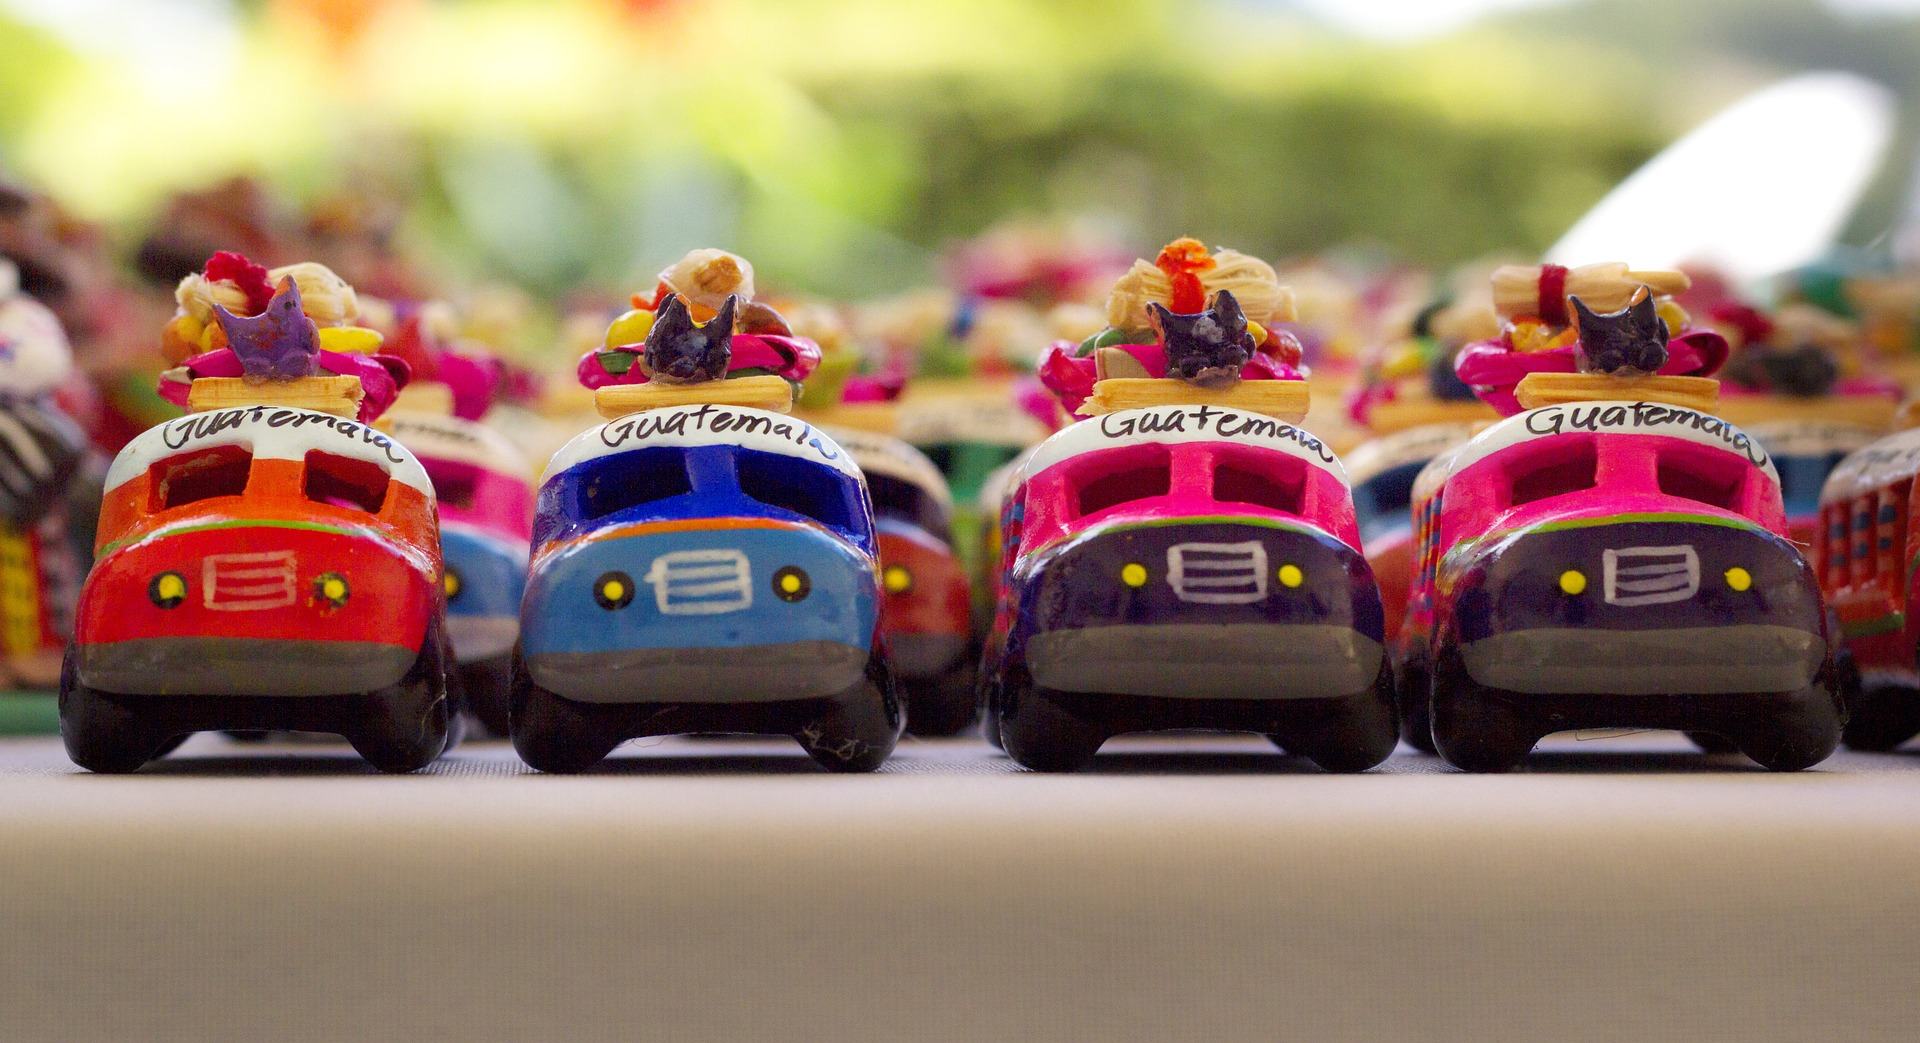 Toy buses from Guatemala